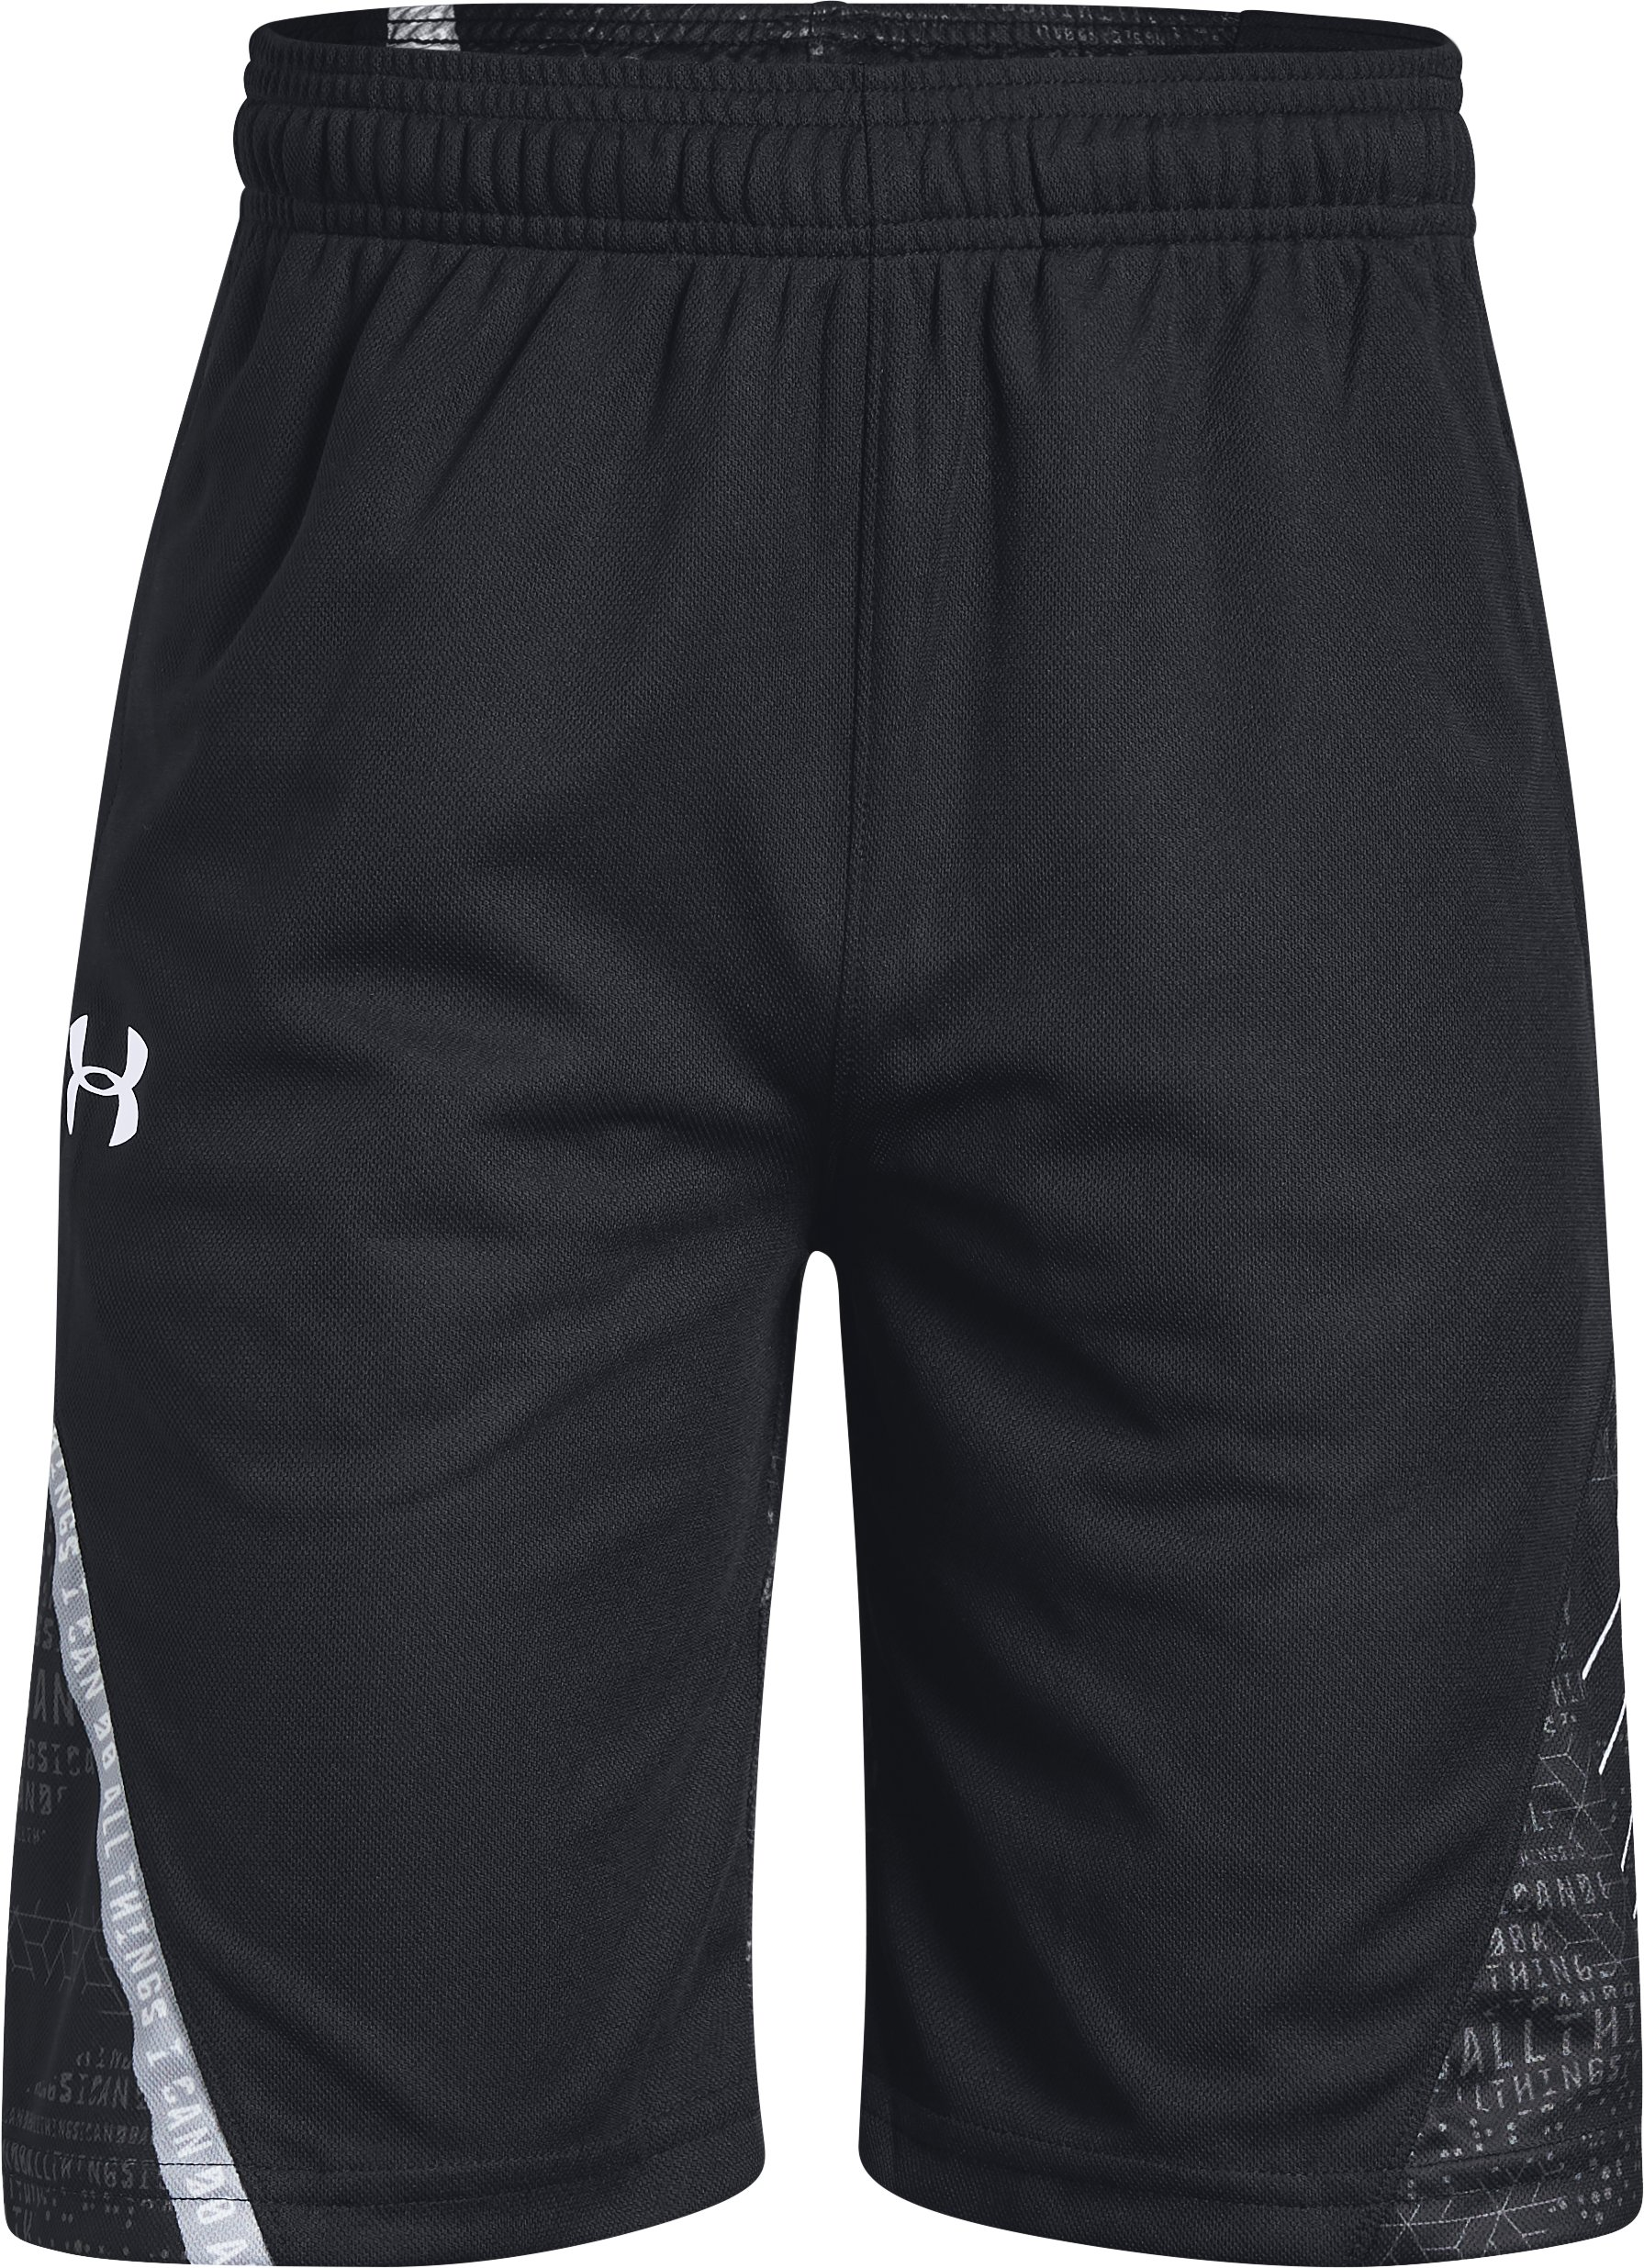 SC30 Short, Black , zoomed